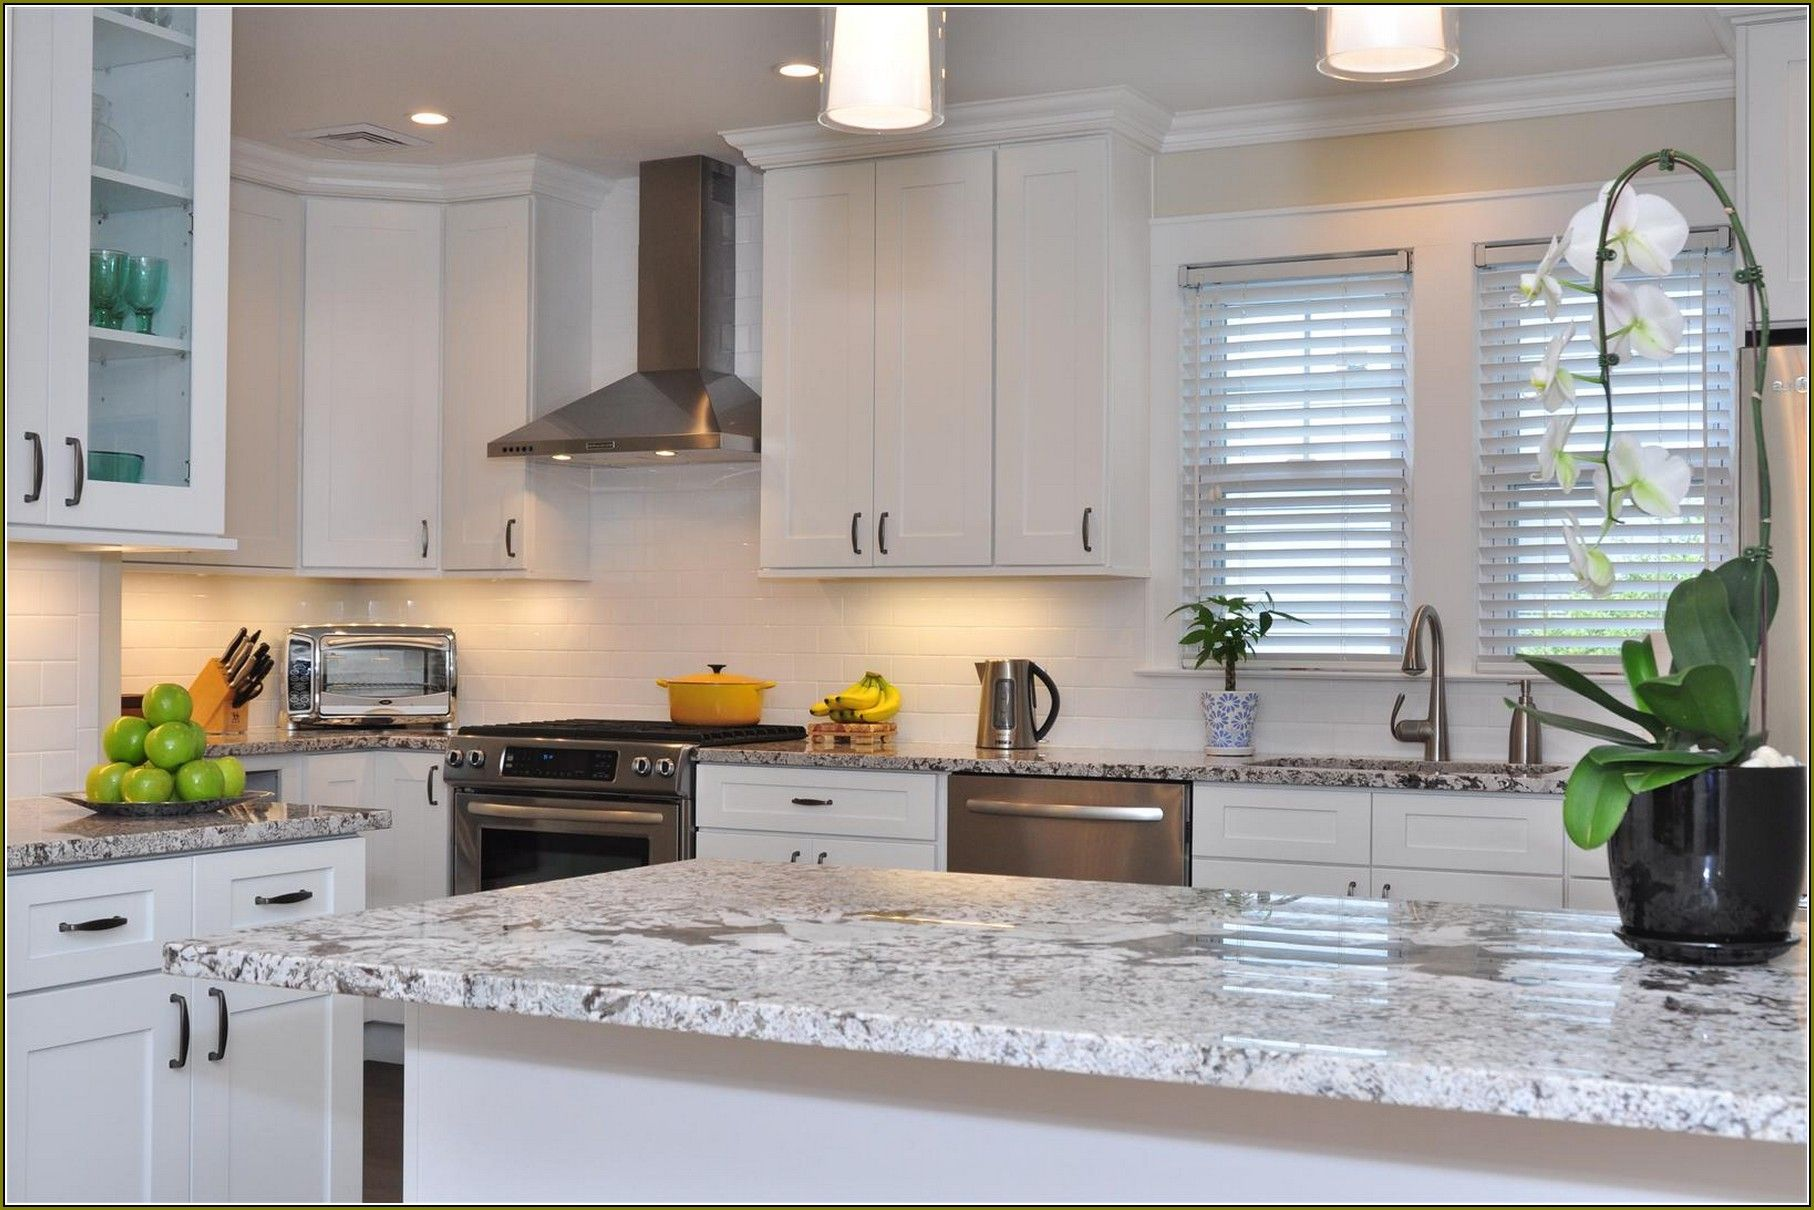 White Shaker Cabinets Kitchen Simple Kitchen Remodel Cheap Kitchen Remodel Kitchen Remodel Cost